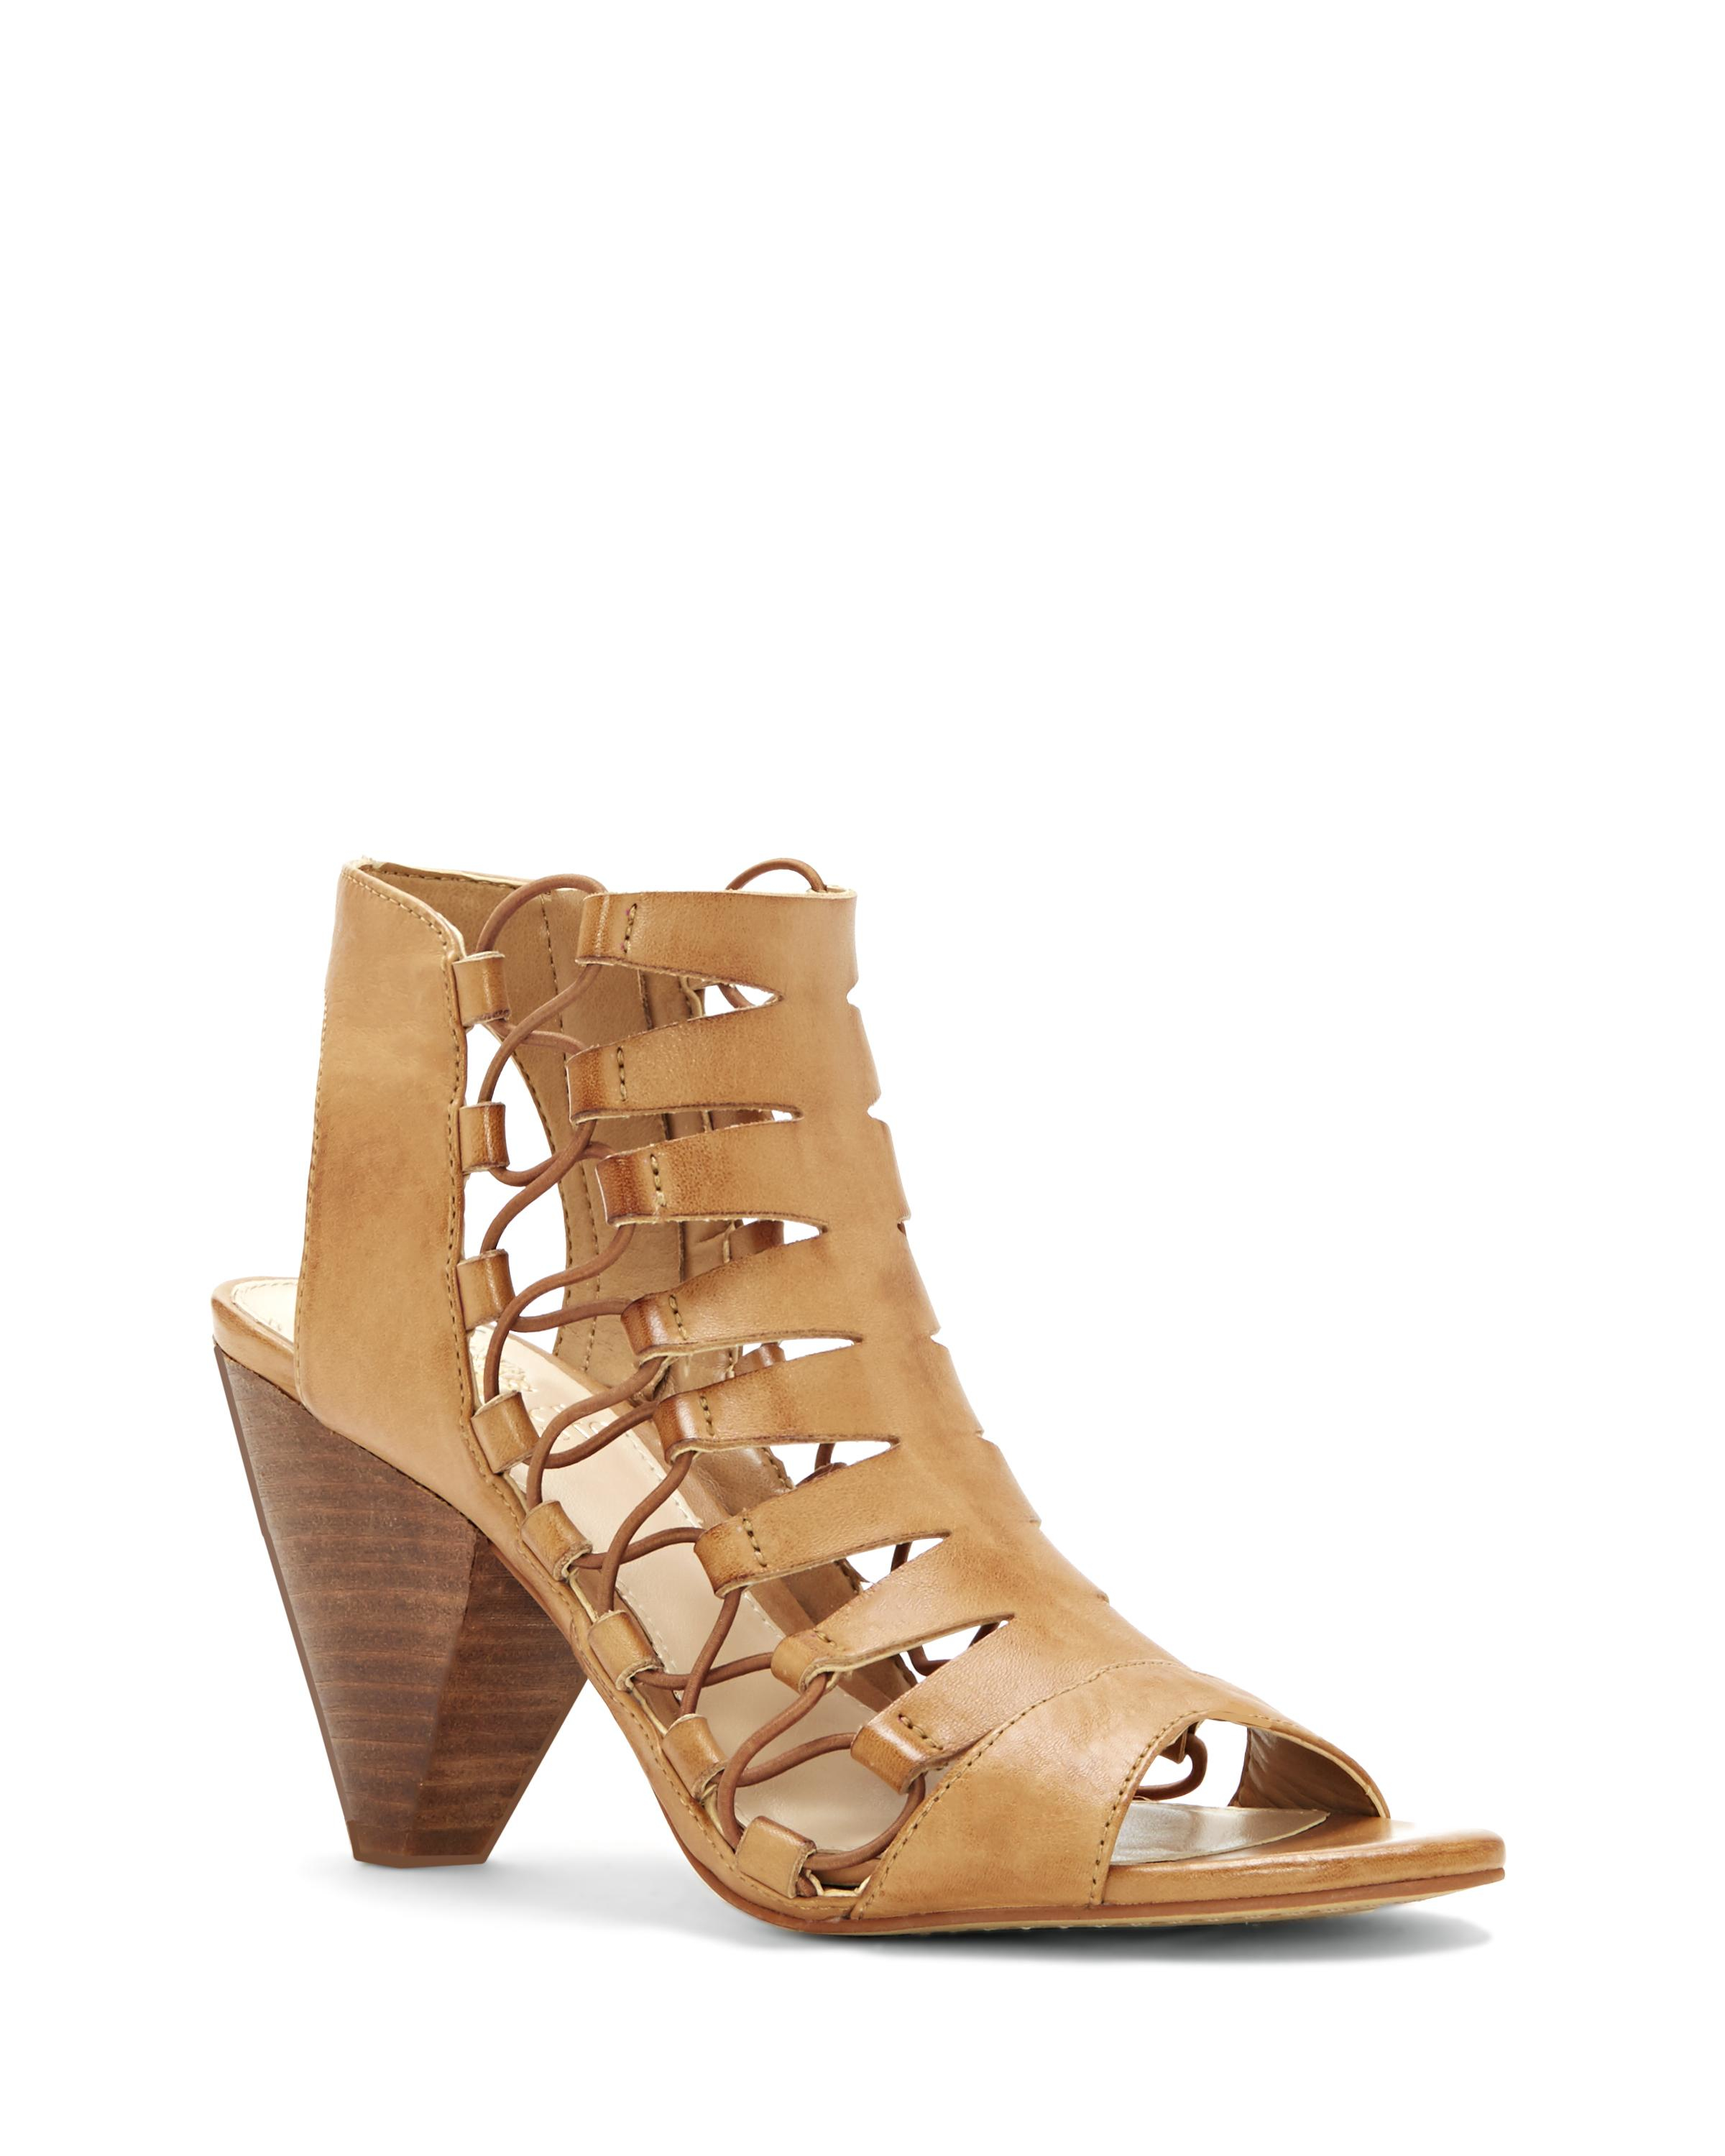 Vince Camuto Eliaz Cord Accented Cone Heel Sandal In Natural Lyst